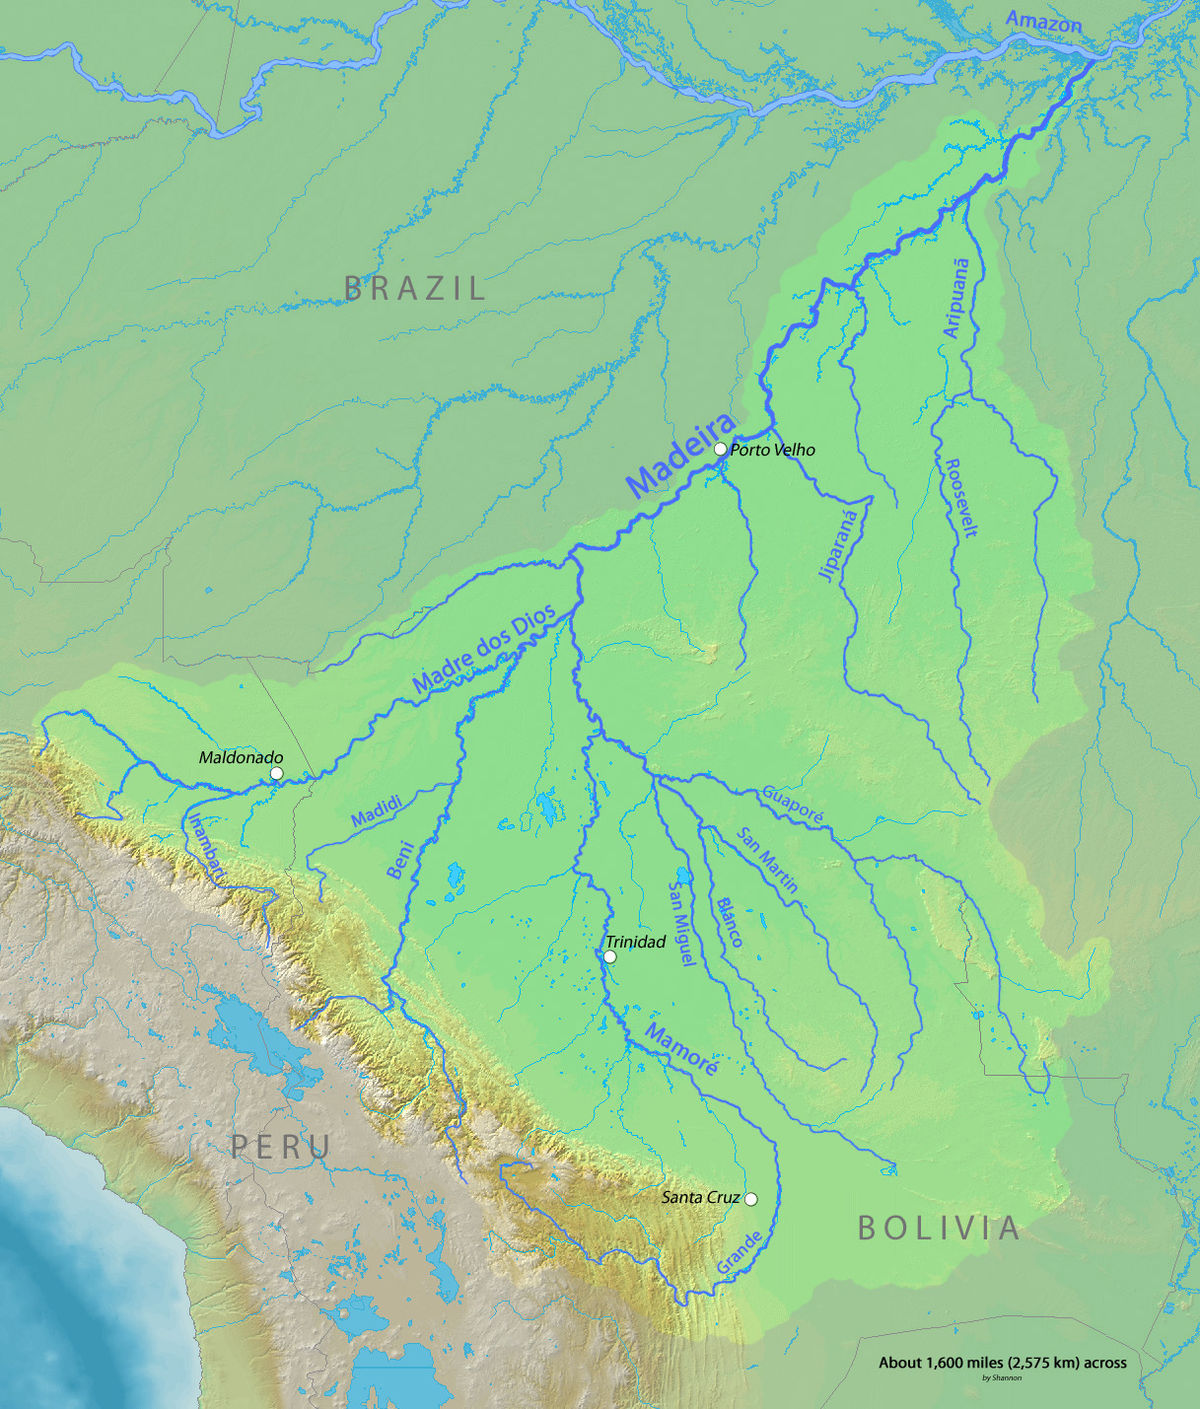 Roosevelt River Wikipedia - Map of south america amazon river